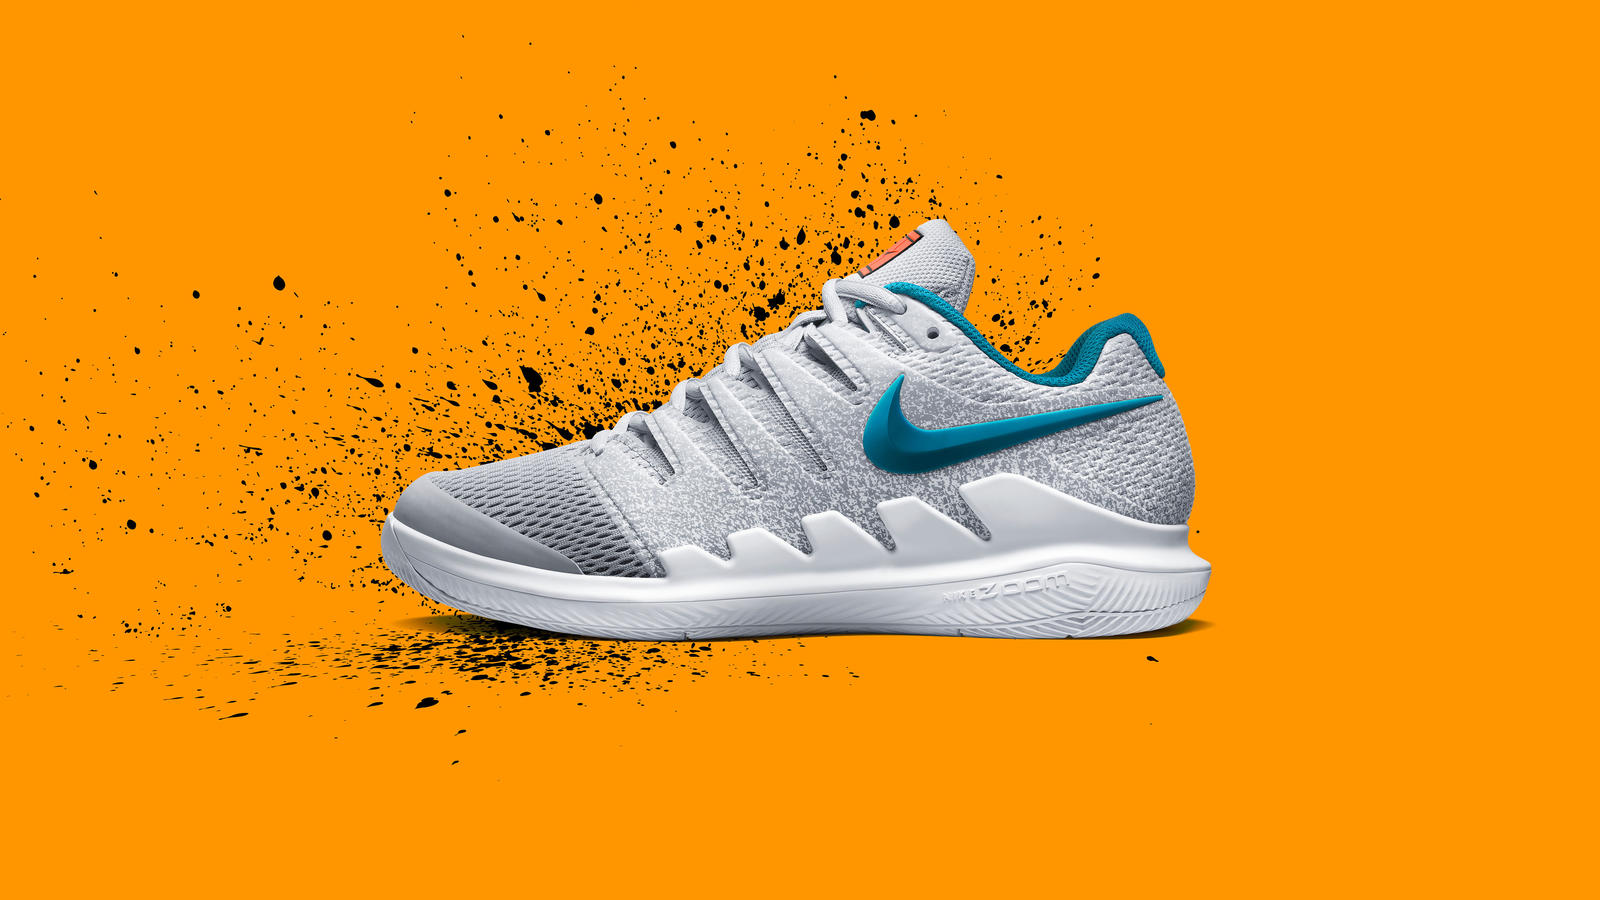 Nikecourt fresh pack hd 1600